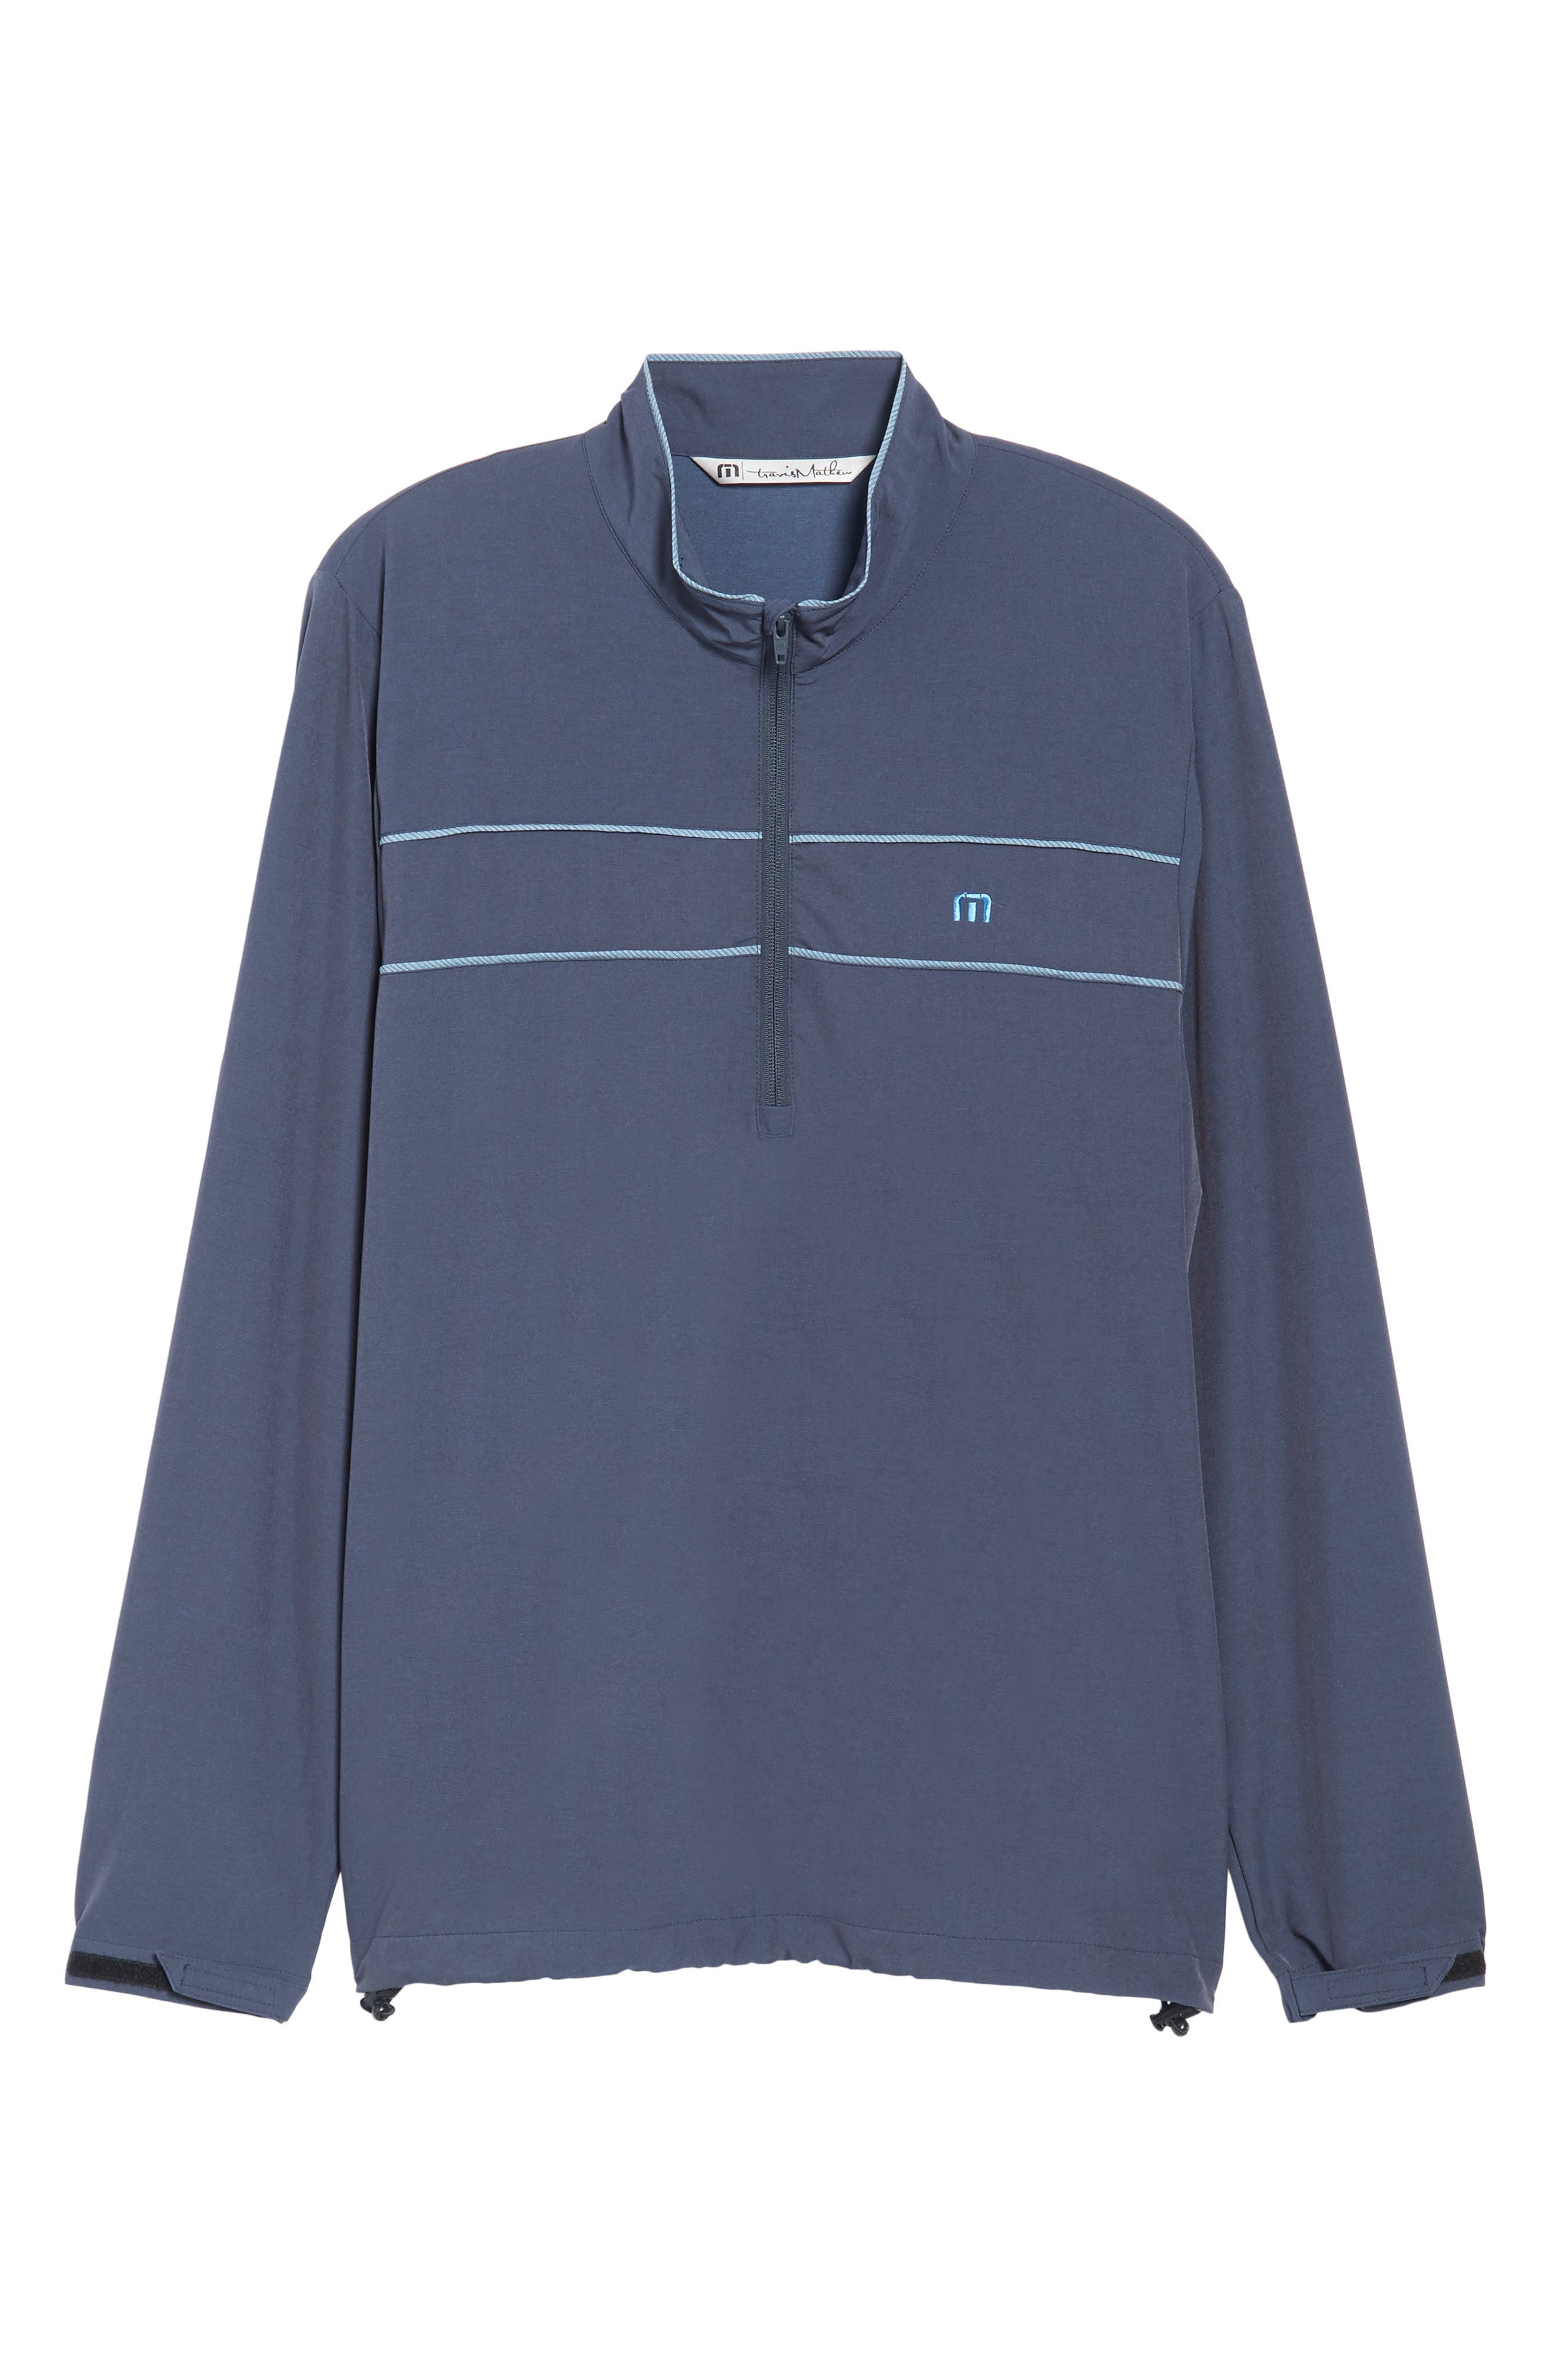 Leon Half Zip Pullover,                             Alternate thumbnail 6, color,                             Blue Nights/ French Blue